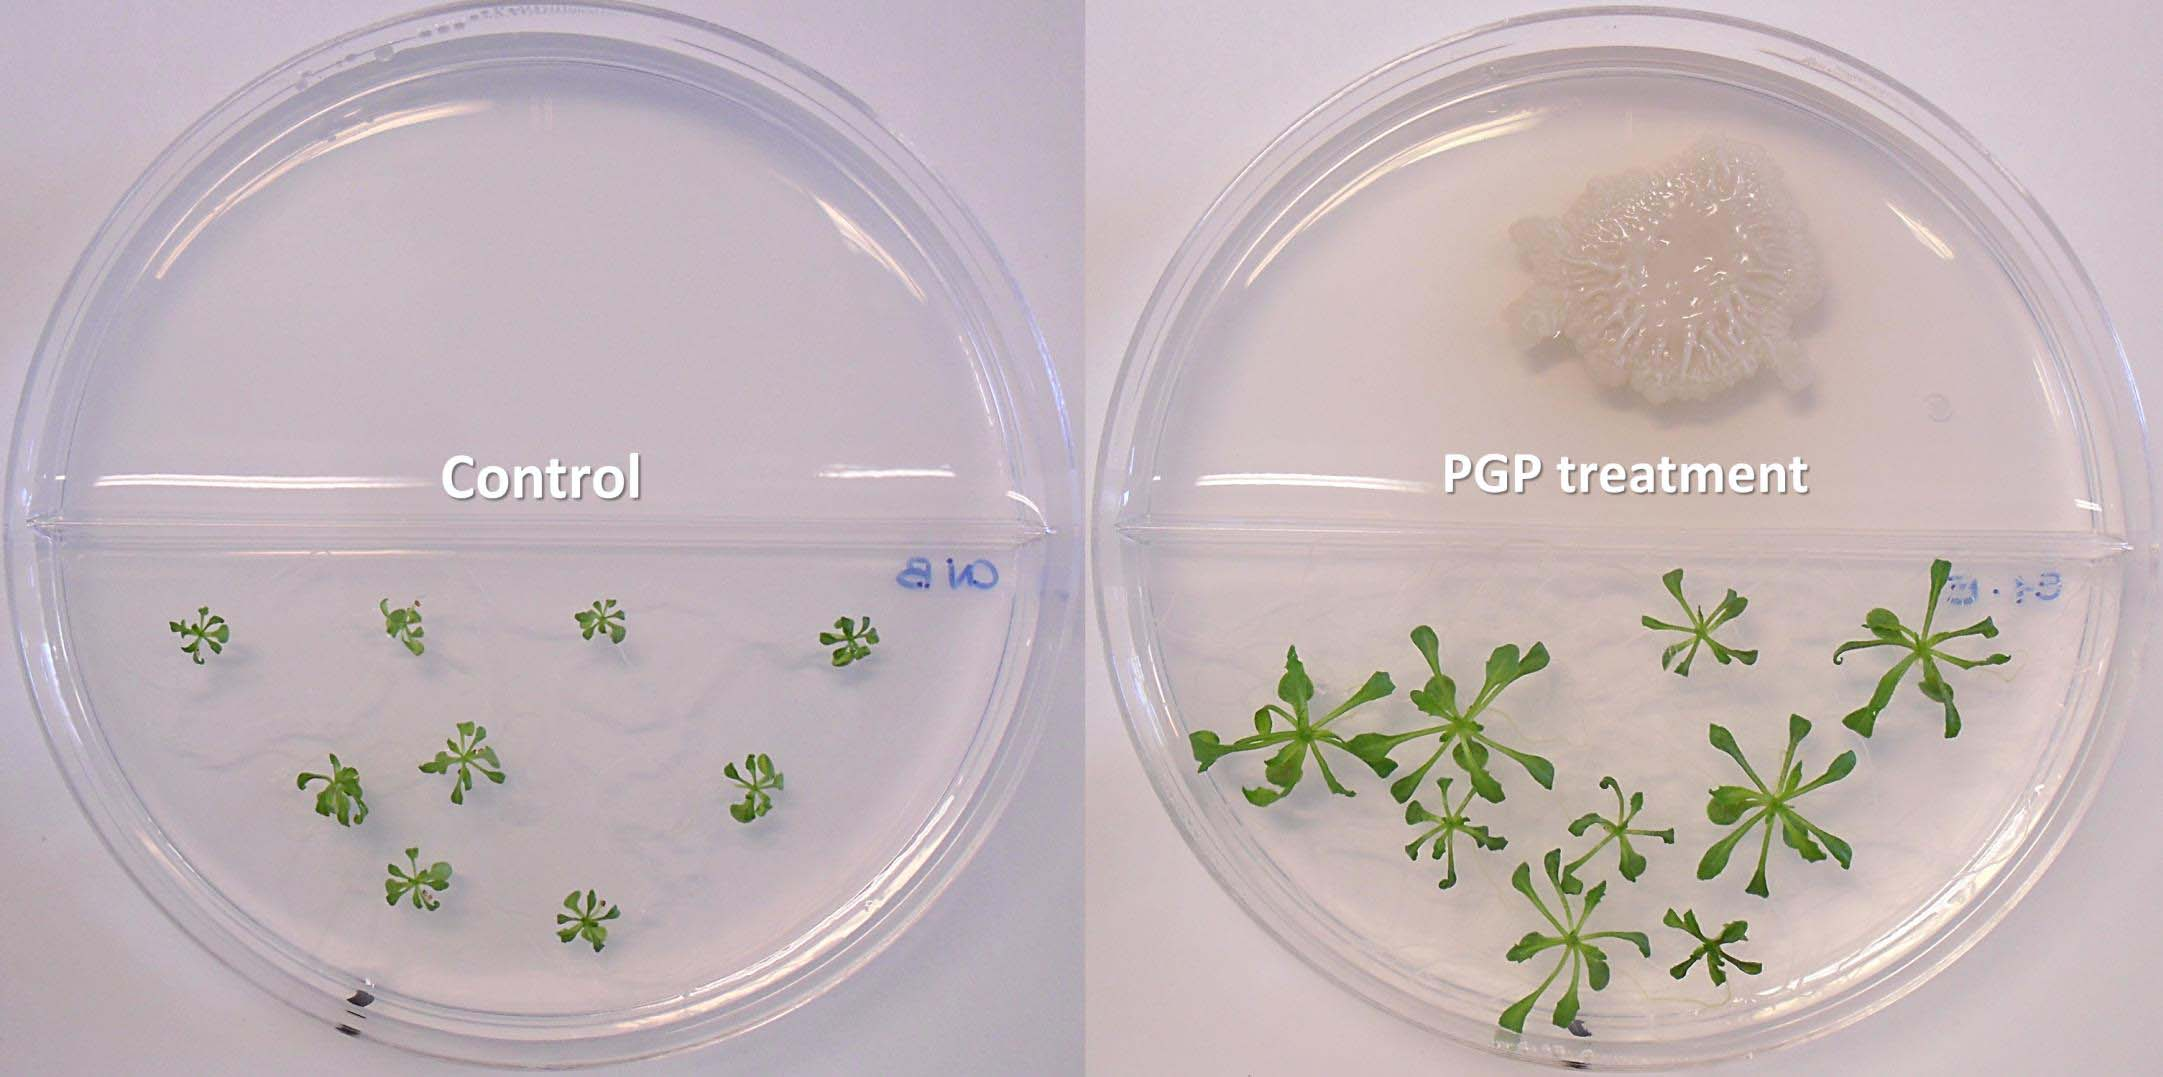 Influence of Plant Growth Promoting Bacteria (PGPB) on plants